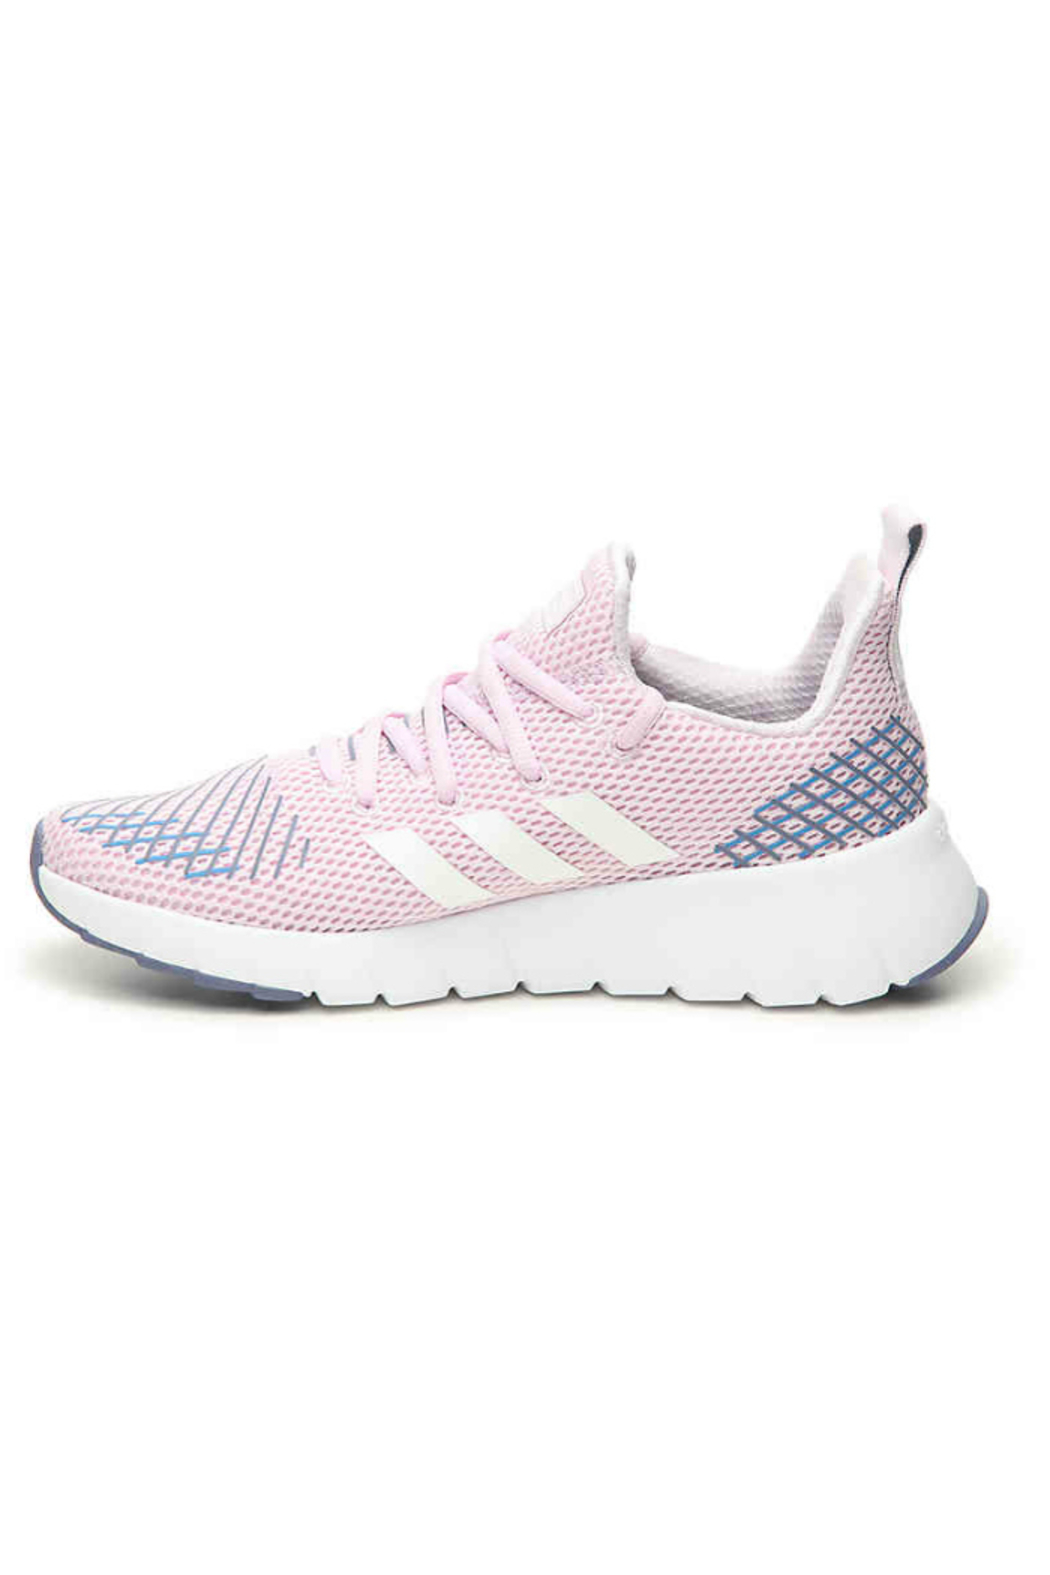 adidas Adidas Asweego K Girls - Side Cropped Image